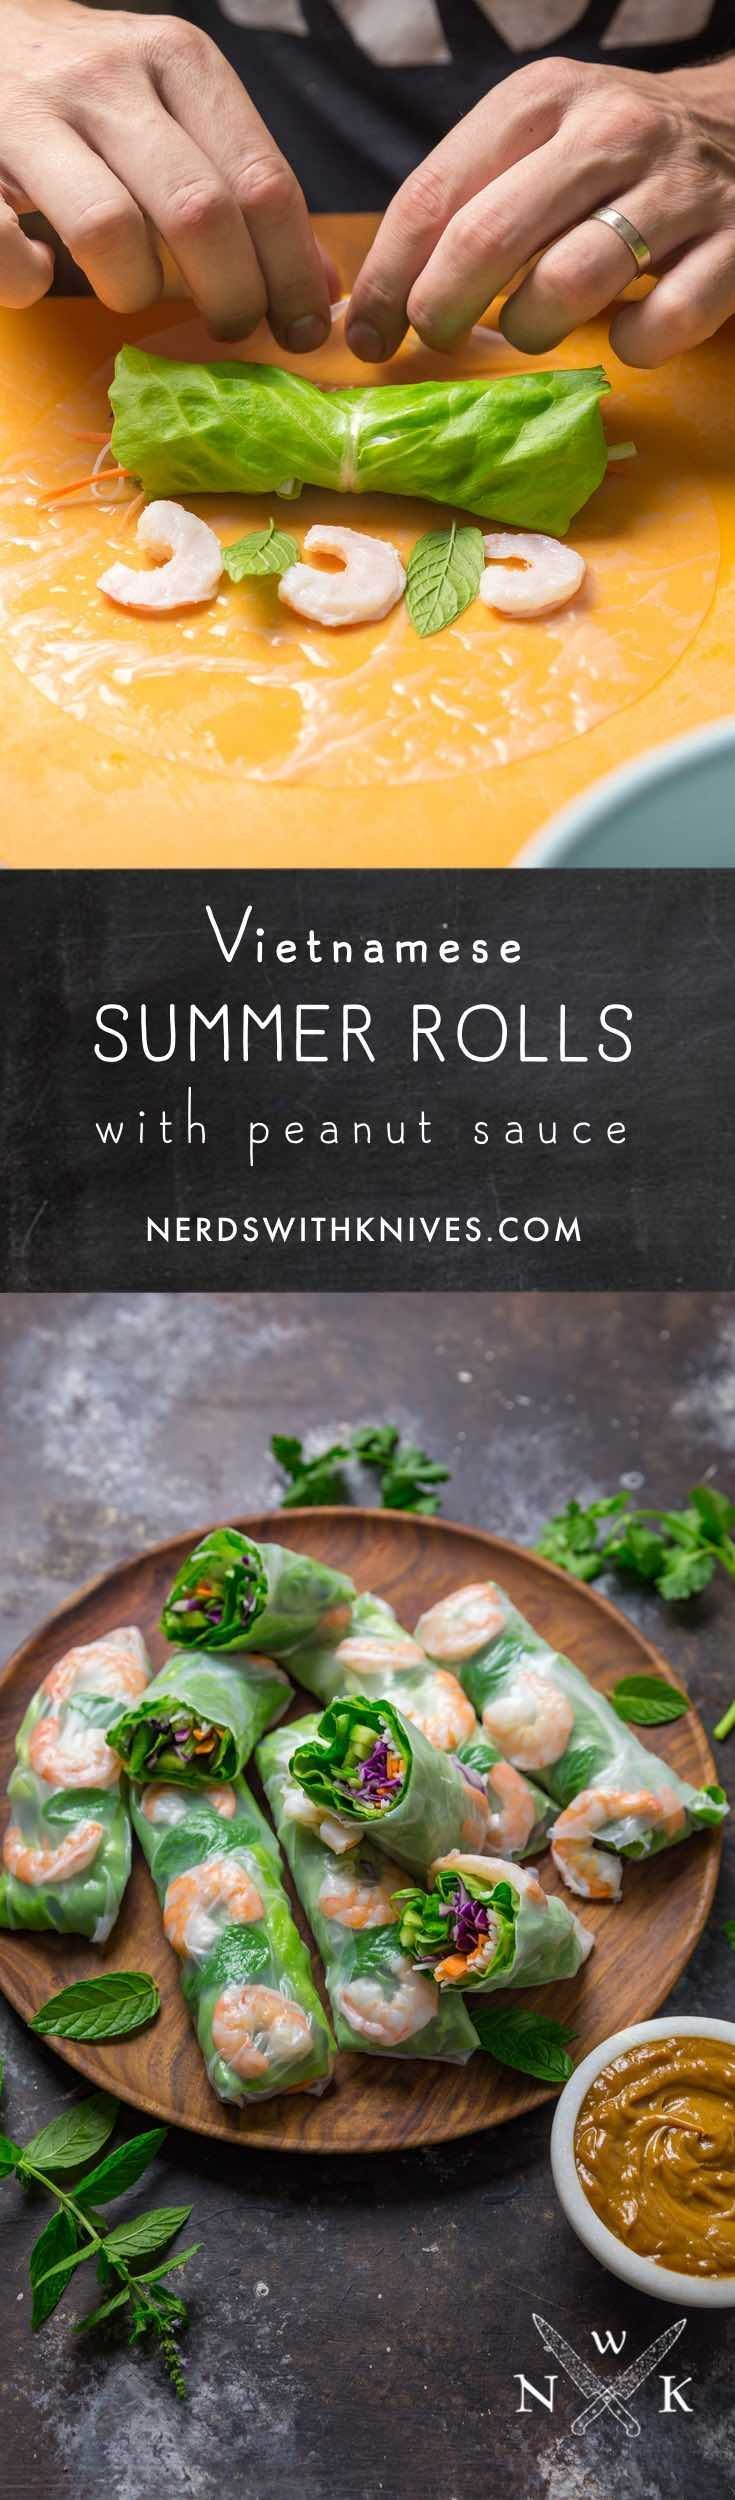 Fresh, light and delicious, Vietnamese summer rolls are a great appetizer or light meal any time of the year. Crisp vegetables, bright herbs and shrimp are rolled in a rice paper wrapper, with a side of sweet and salty peanut sauce for dipping.